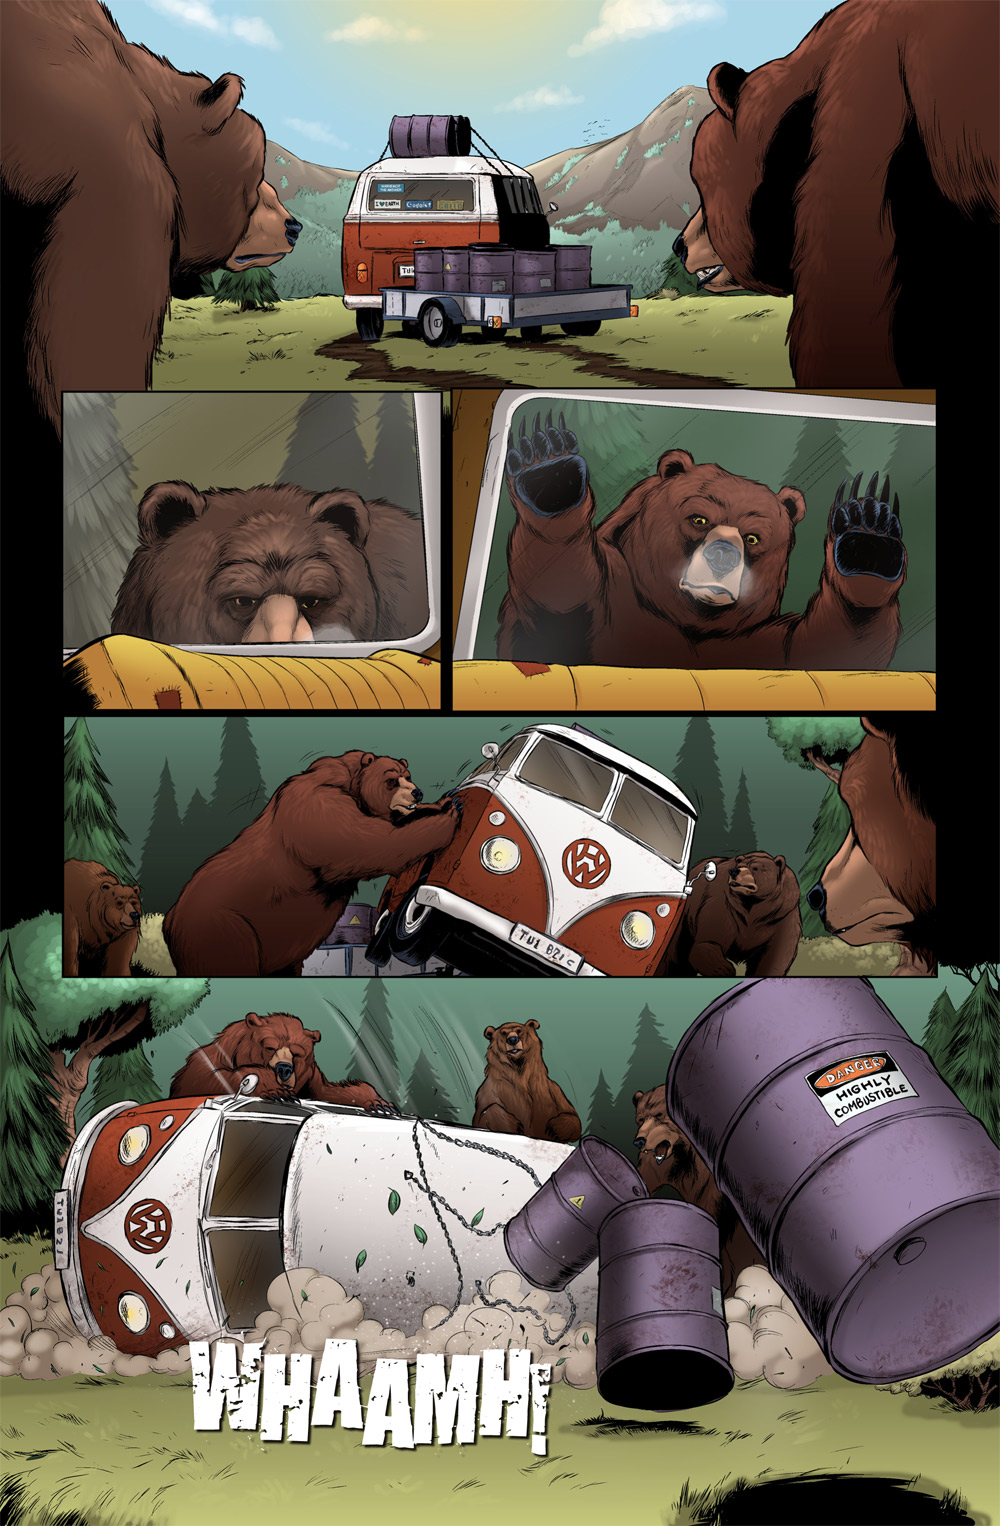 see how that one bear almost pushed the van on top of his friend.  They will probably have to have a talk later about being more attentive to one another..